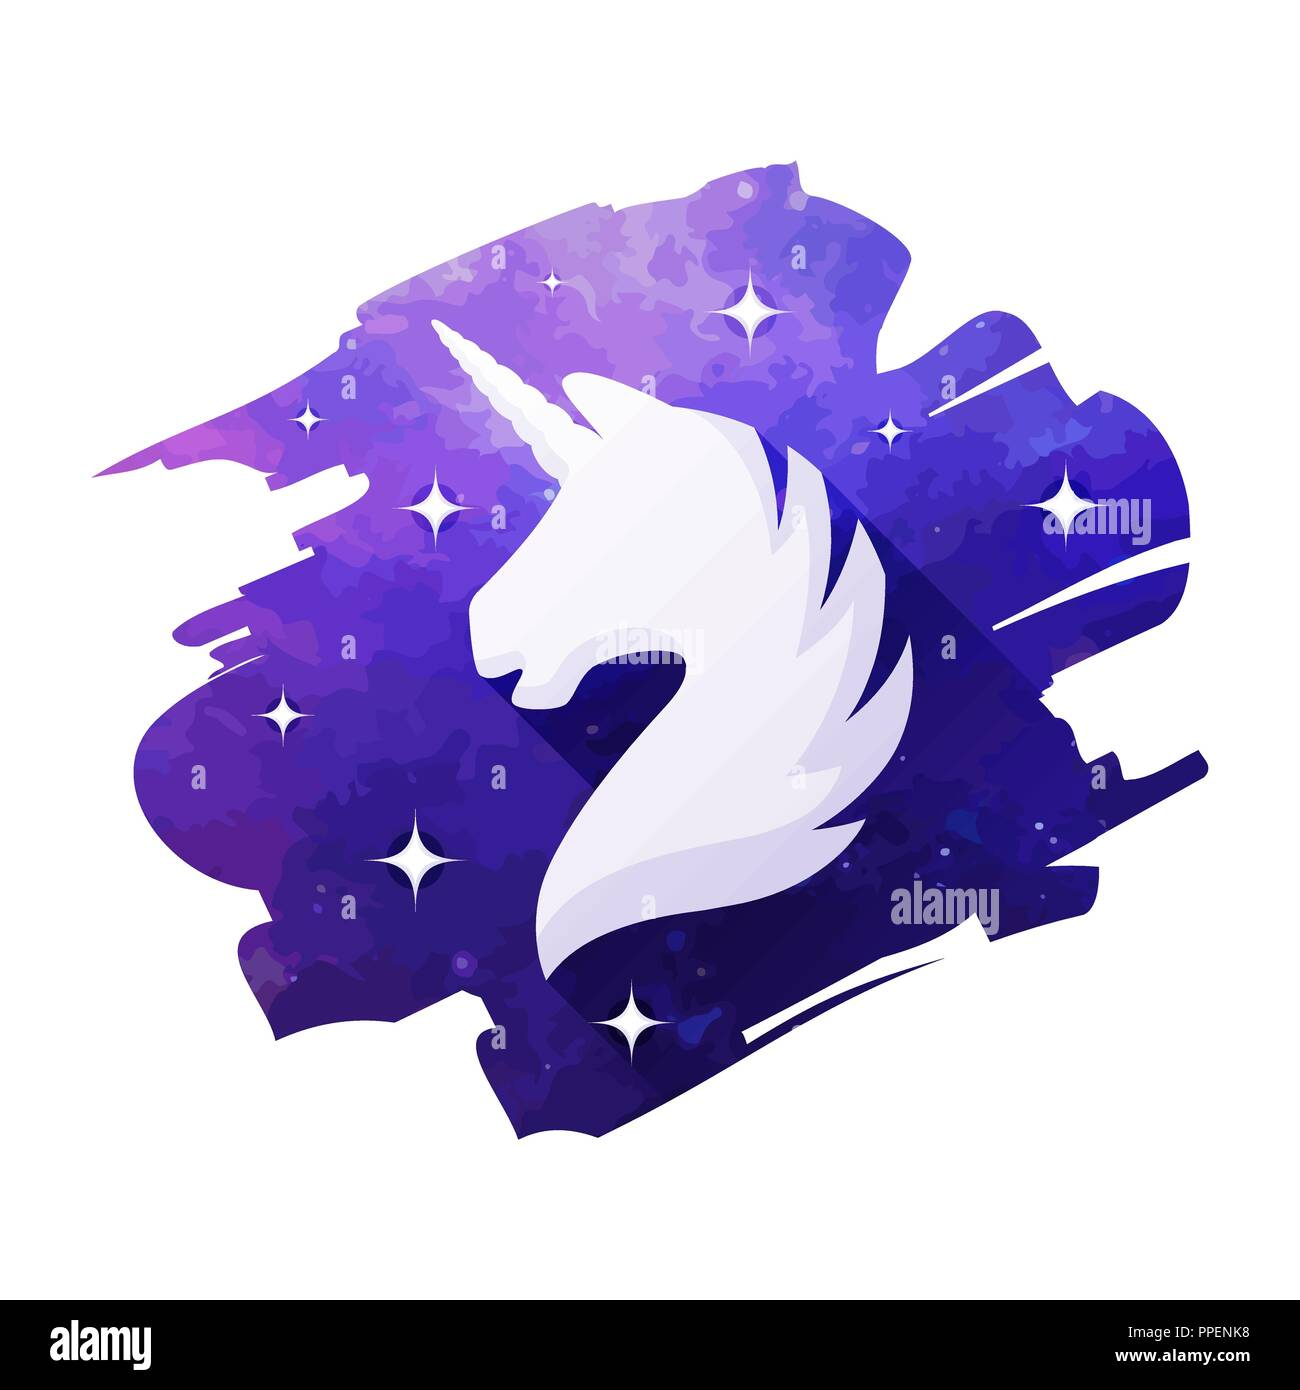 Unicorn head vector illustration isolated on white background. Silhouette of a unicorn - Stock Vector